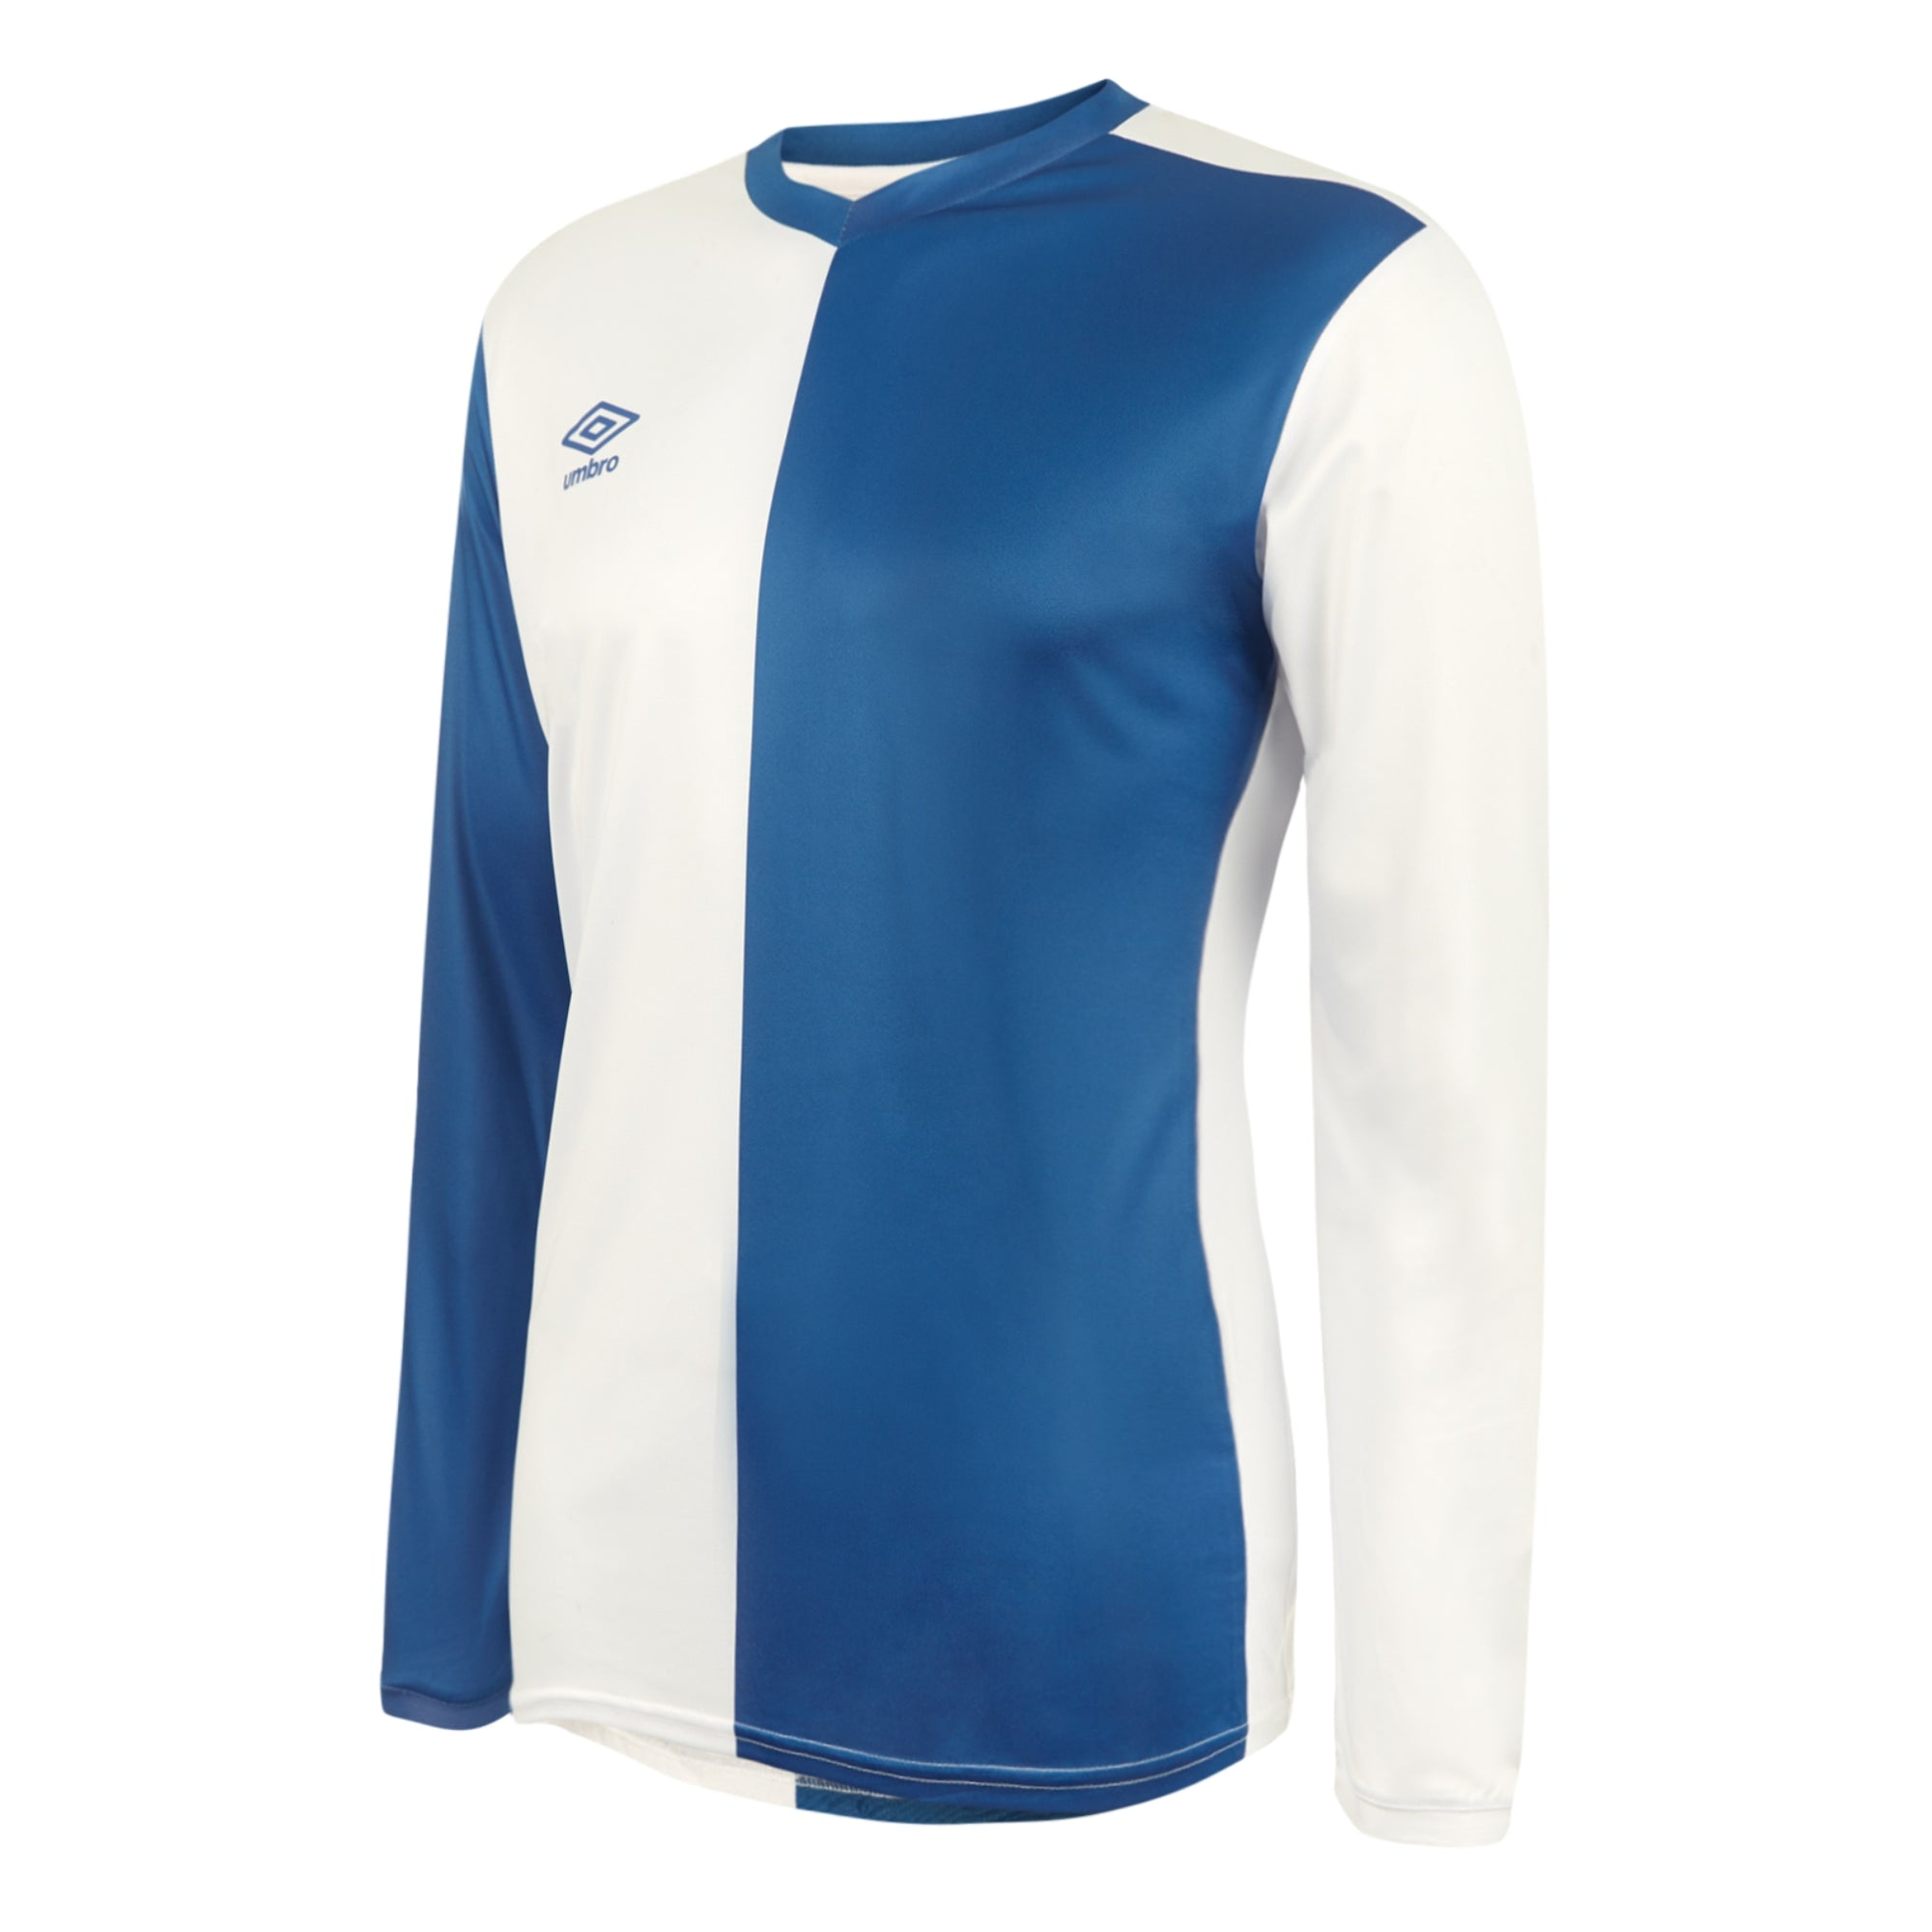 Umbro 50/50 LS Jersey - Royal/White